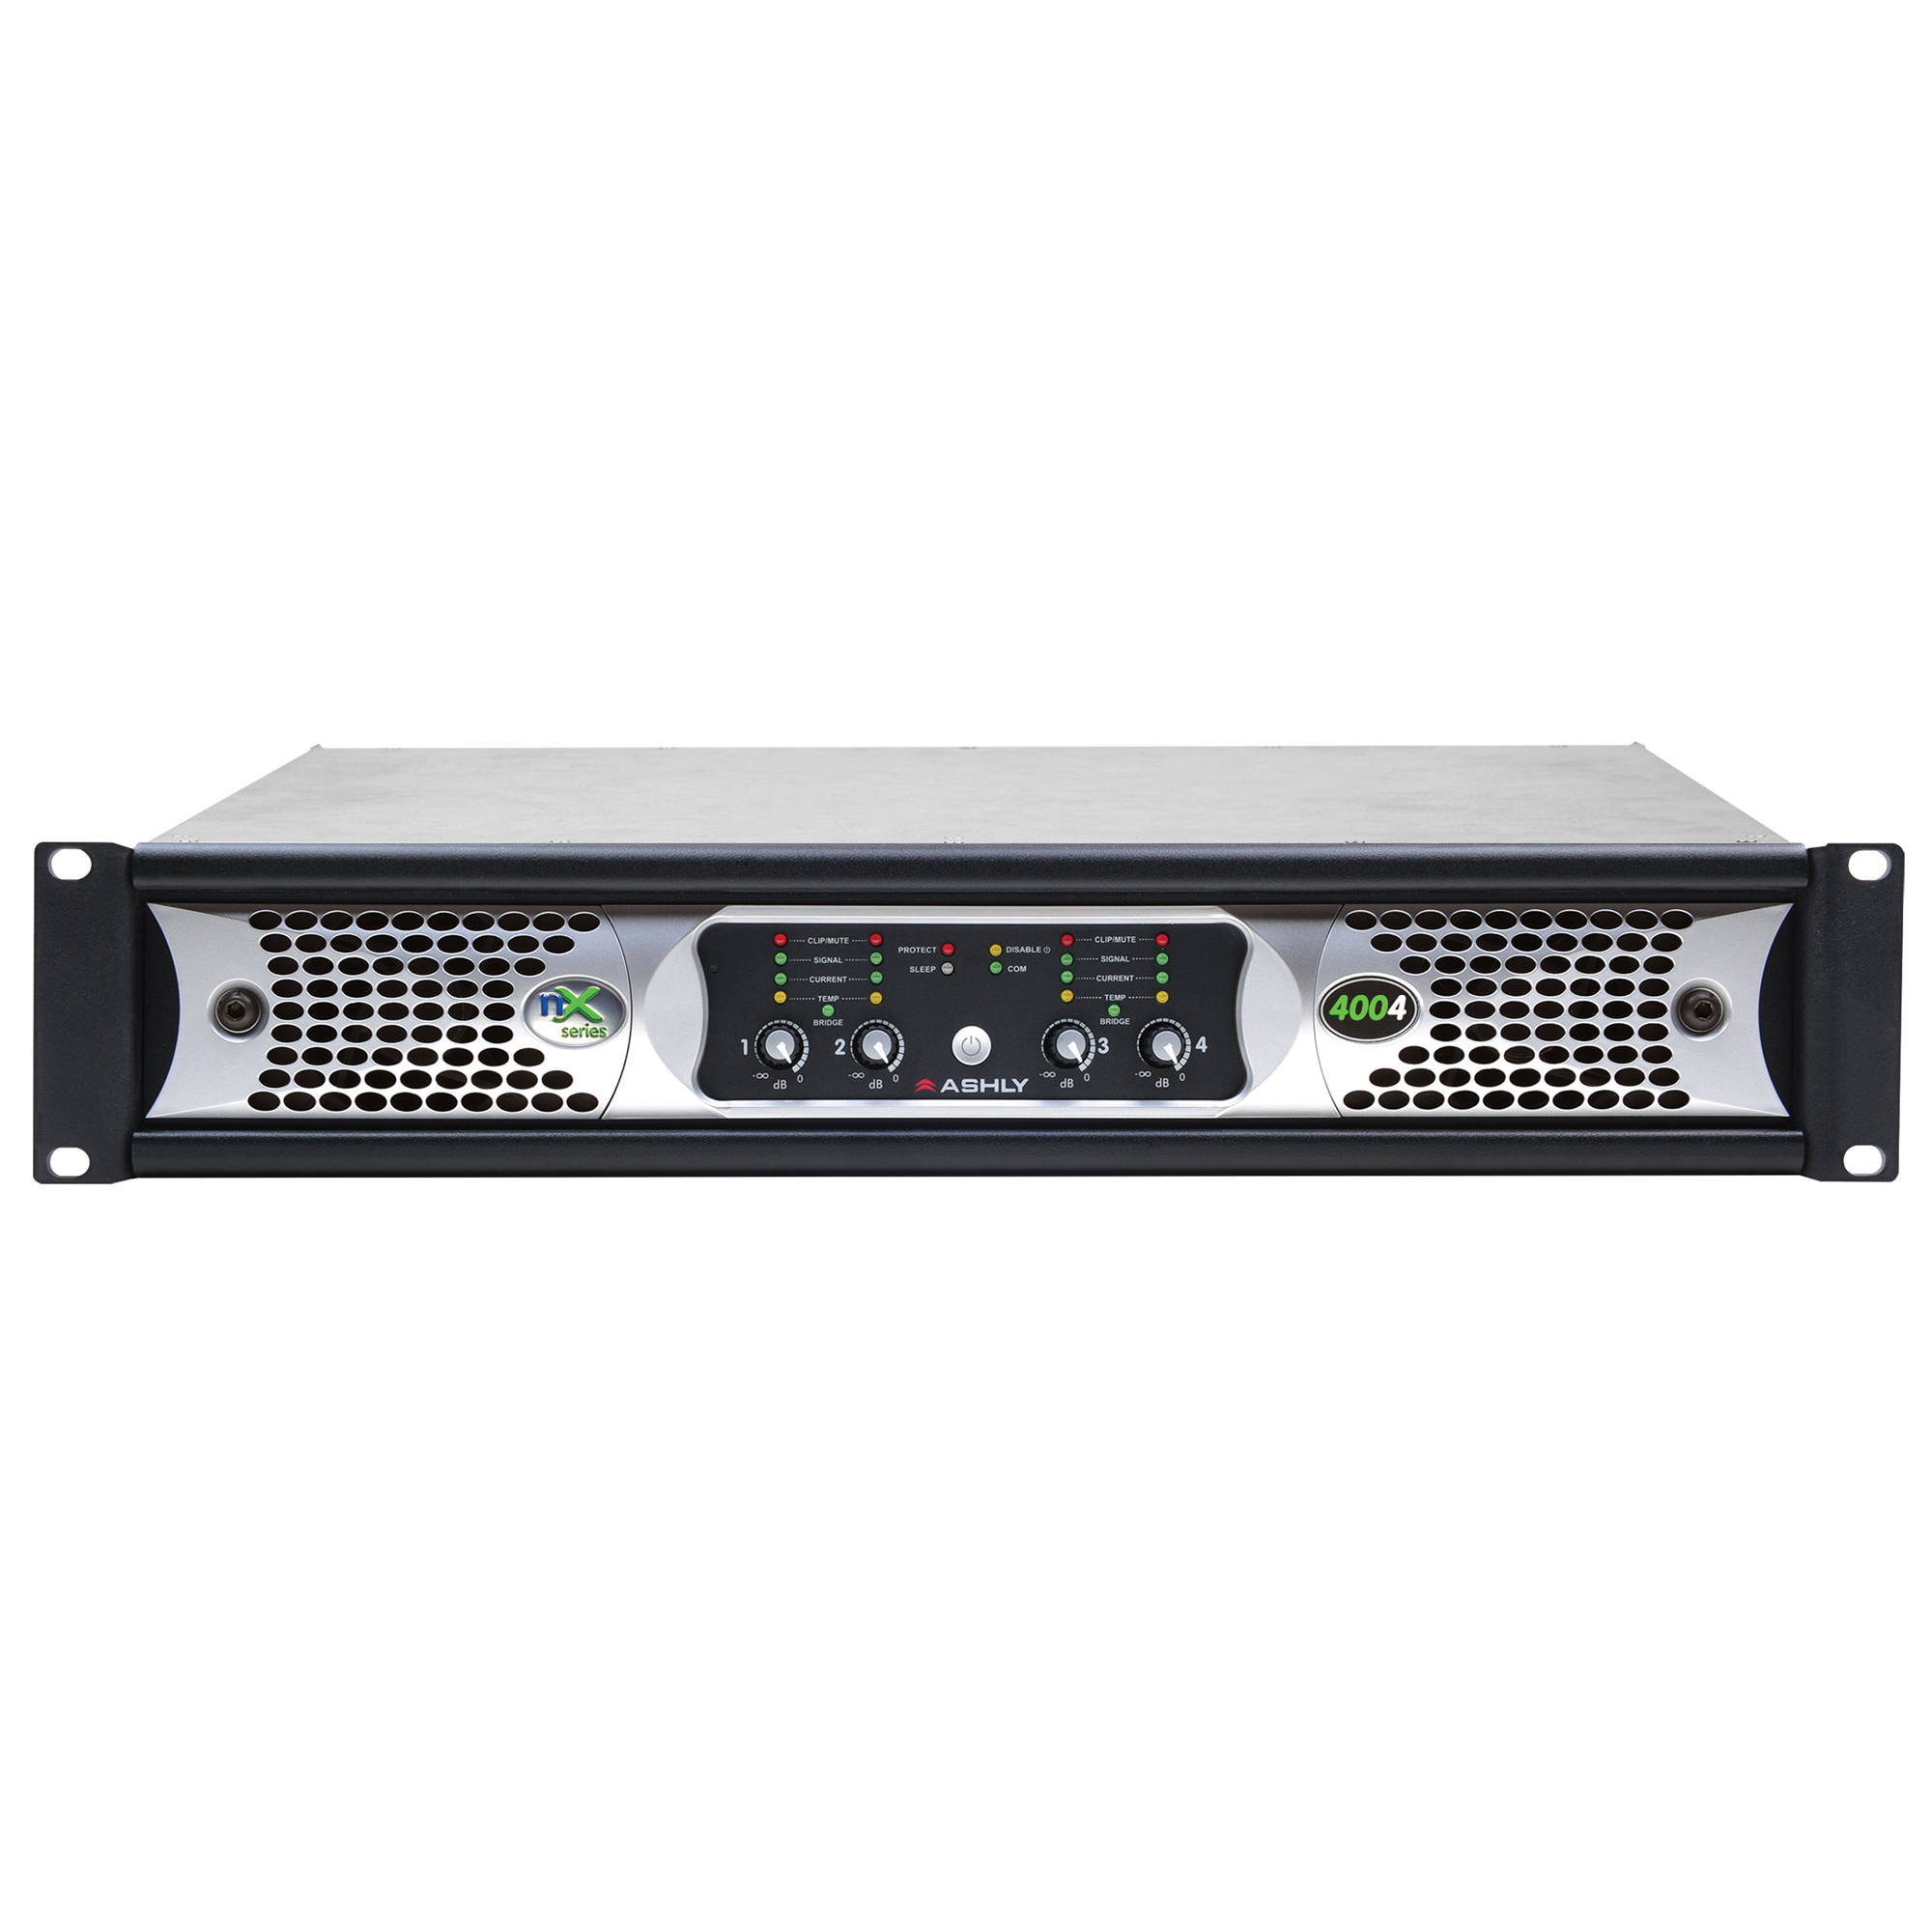 Ashly Nx Series Nx4004 4 Channel 400w Power Amplifier Bh Class A With 60 Watts Output Programmable Outputs